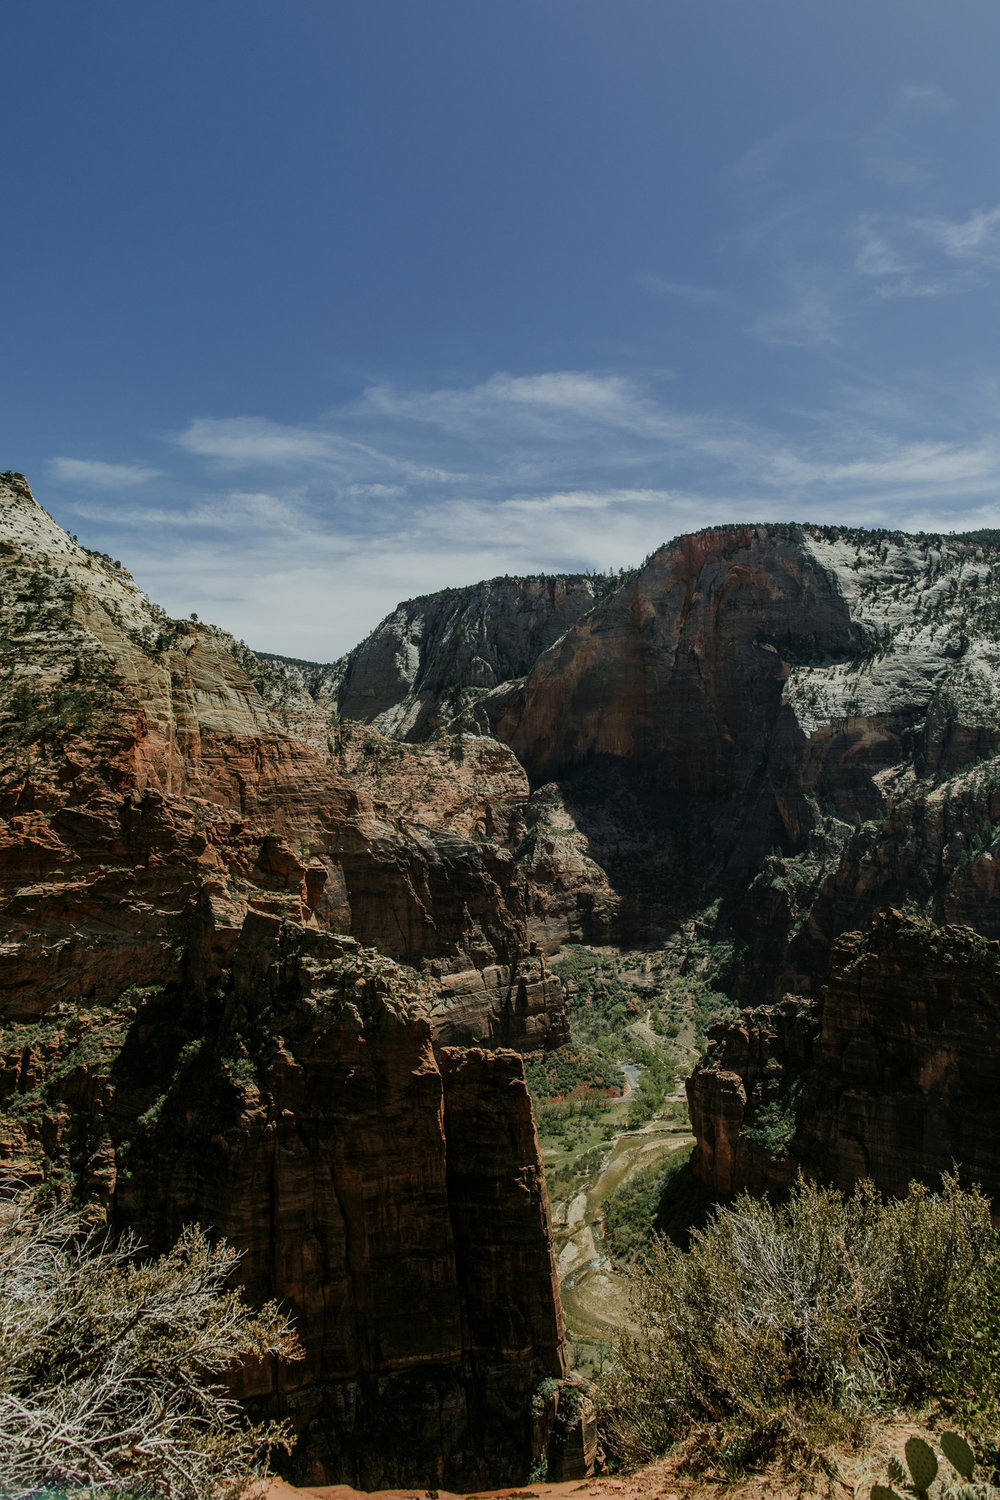 zion-national-park-landscape-travel-photography